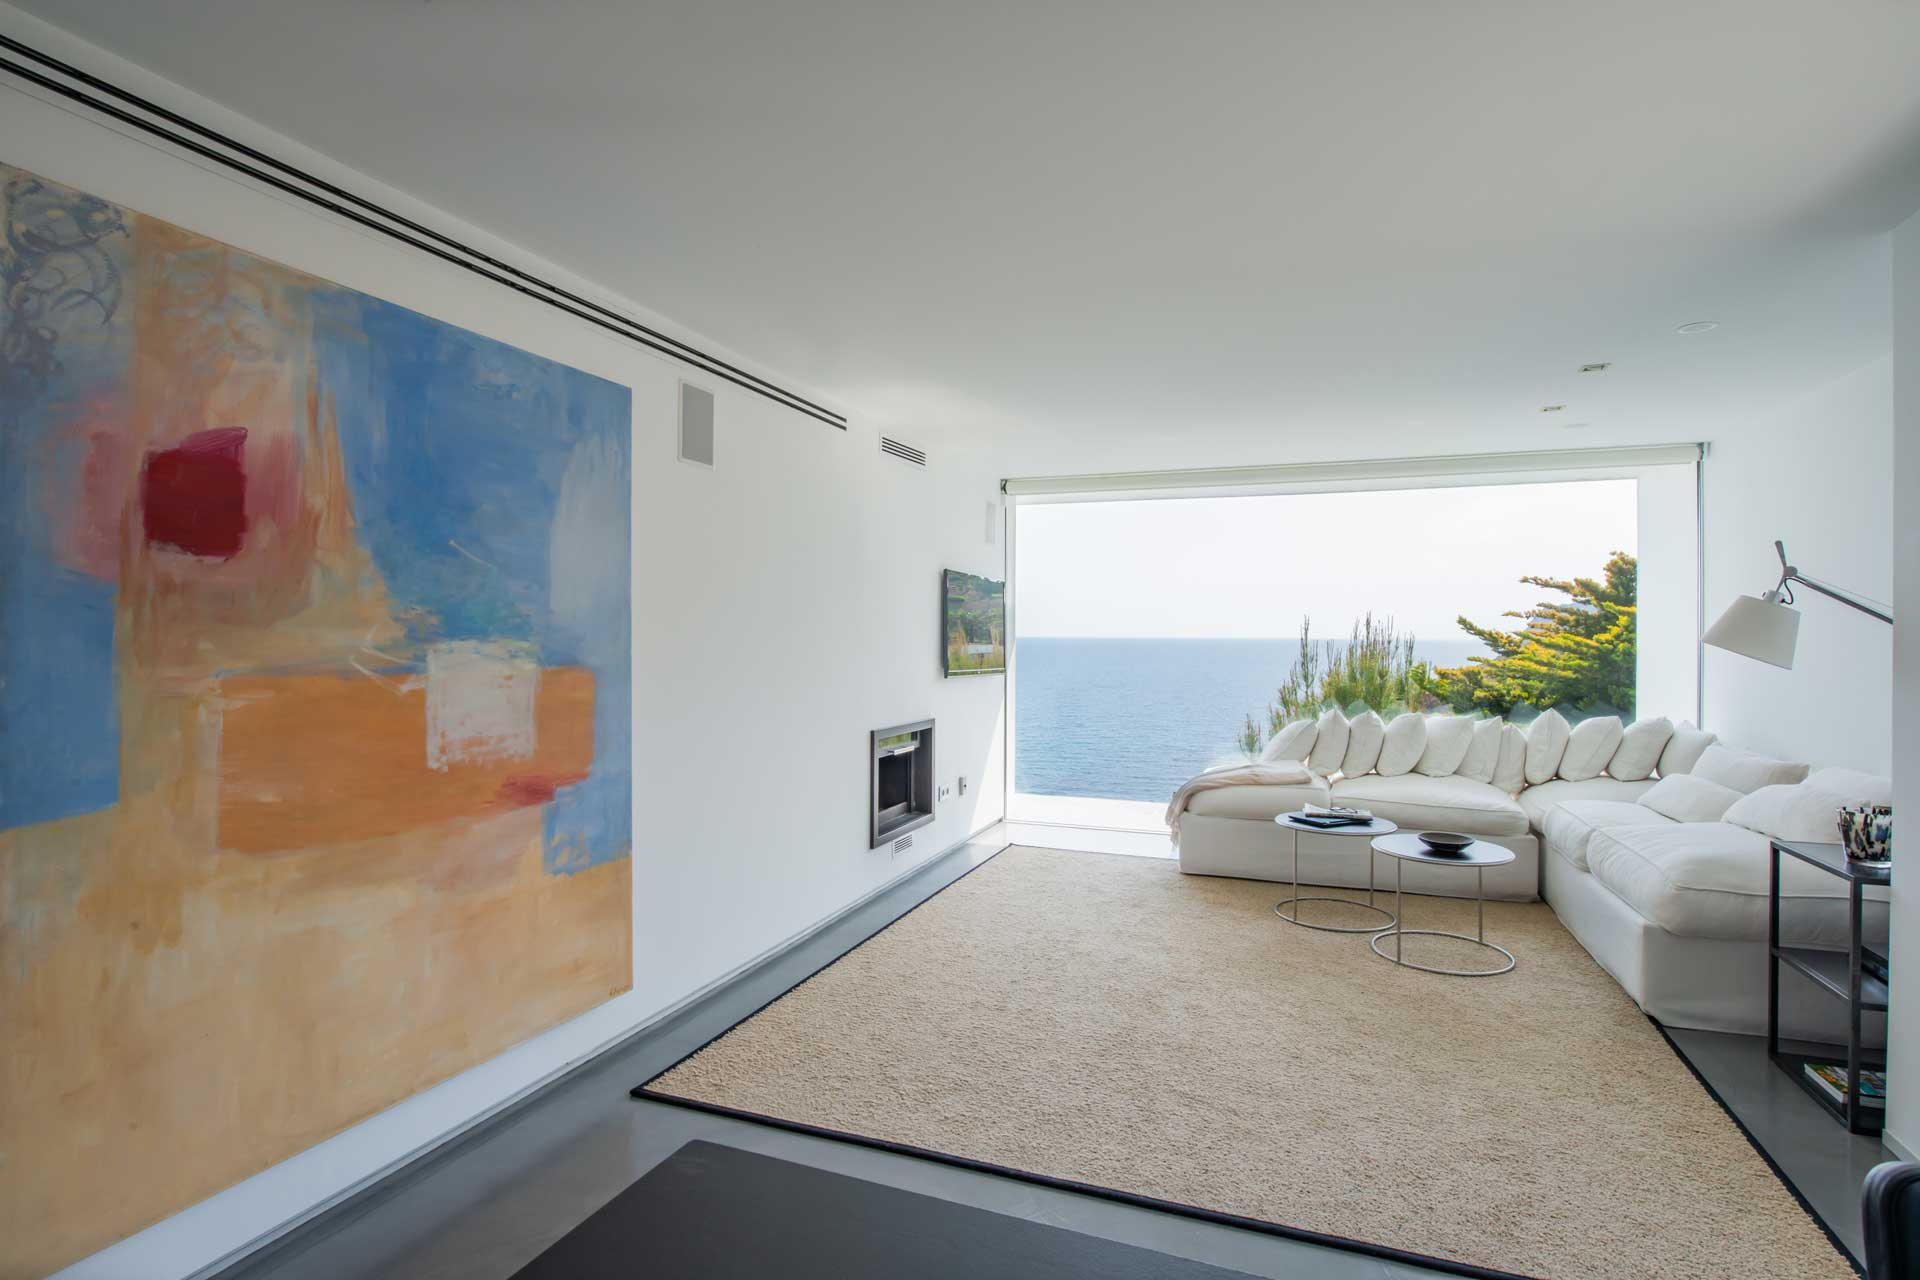 Villa Infinty Ibiza Vista Alegre - Master-Suite with private salon